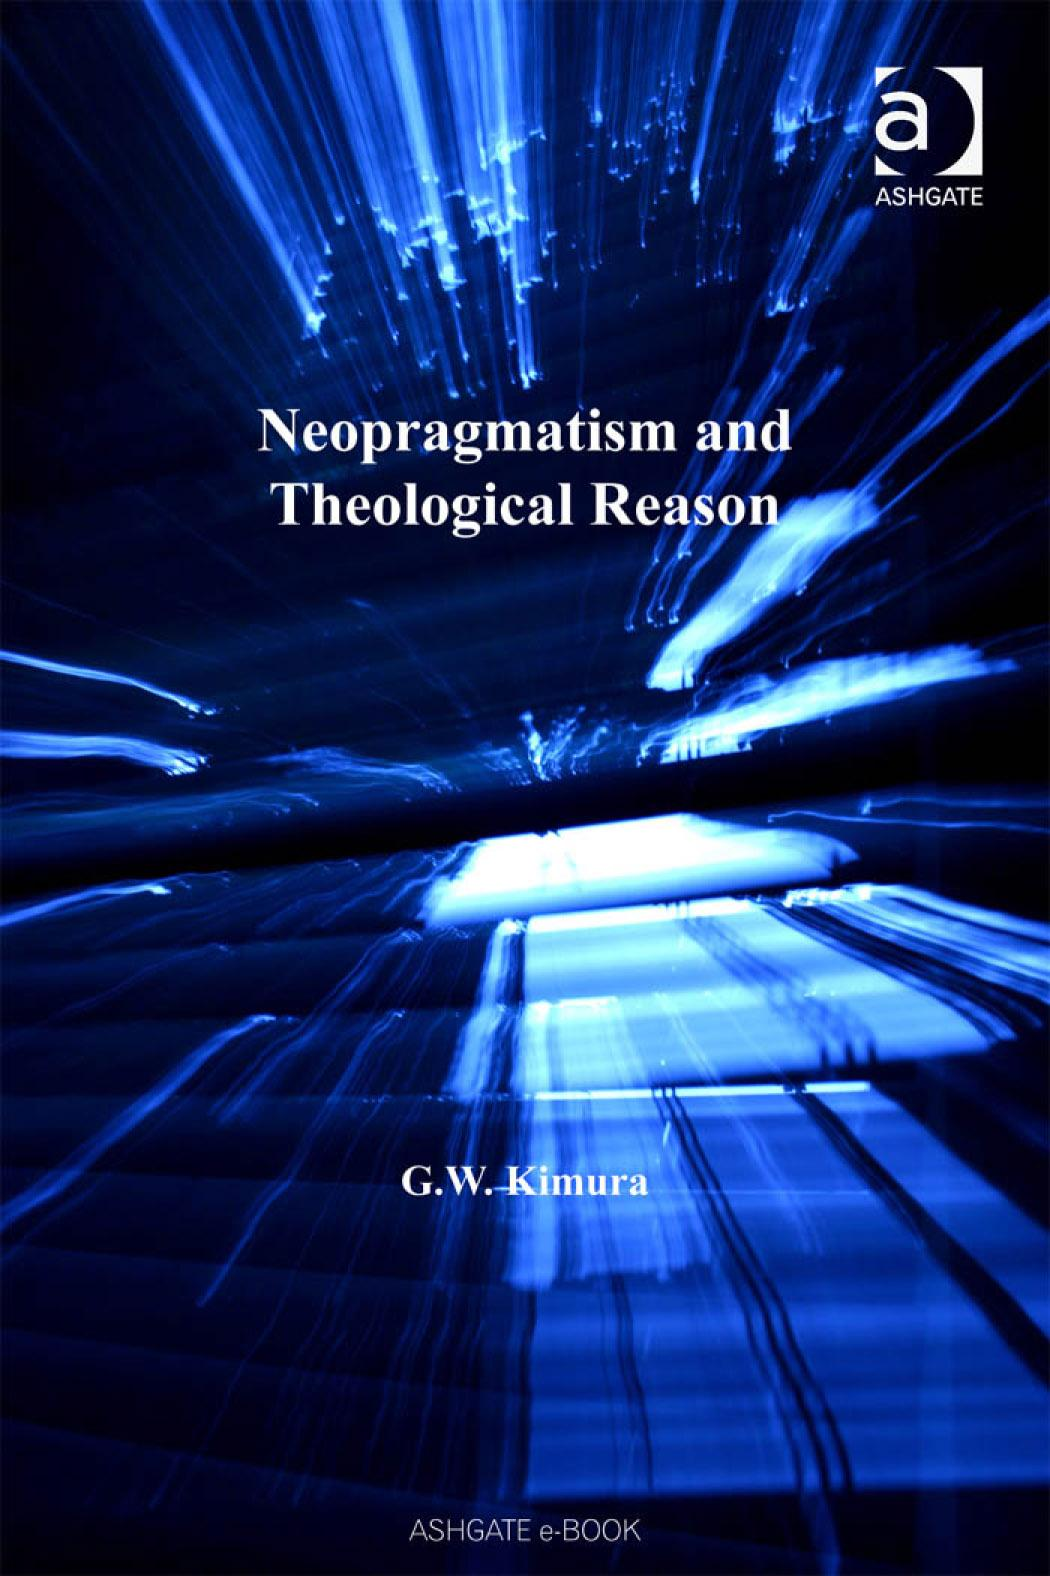 Neopragmatism and Theological Reason Ashgate Gower New Critical Thinking in Religion, Theology and Biblical Studies EB9780754687337